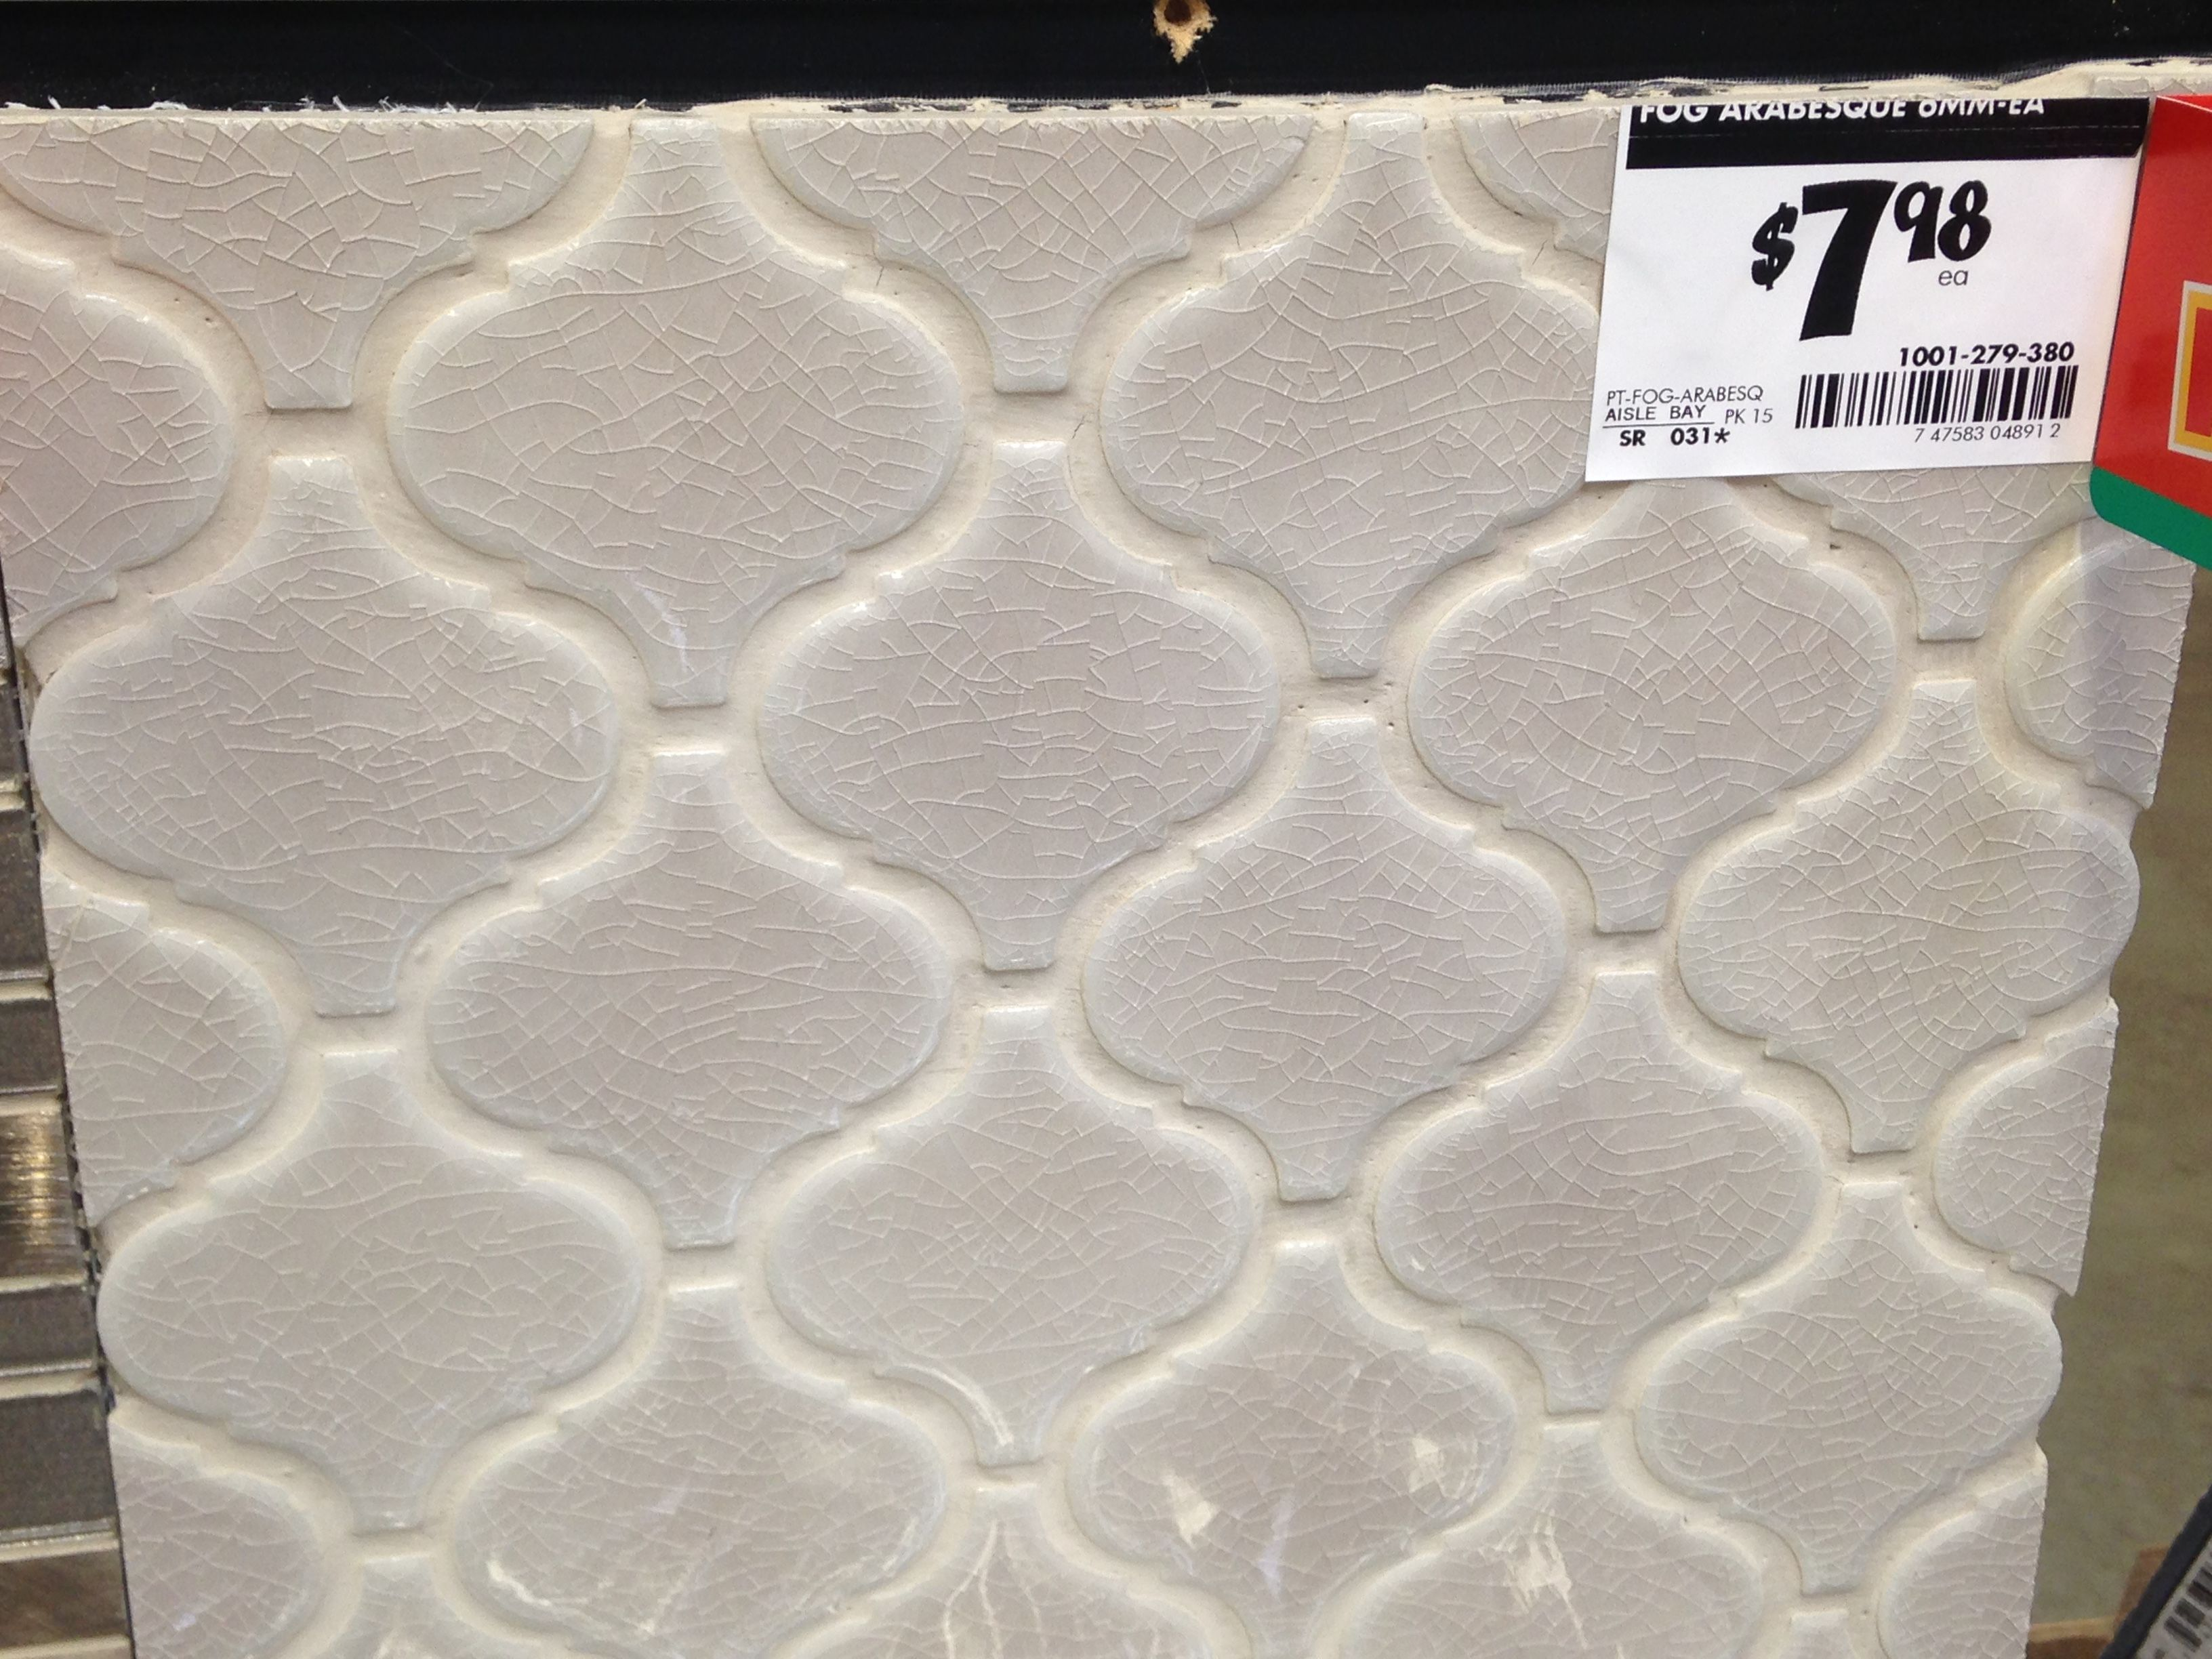 Fog Arabesque tile from Home Depot. Potential backsplash. | Relieve on home depot floor tiles for kitchen, home depot kitchen tile designs, home depot kitchen glass tile backsplash, home depot kitchen backsplash materials, home depot subway tile, home depot cabinets for kitchen, home depot paint for kitchen, home depot granite for kitchen,